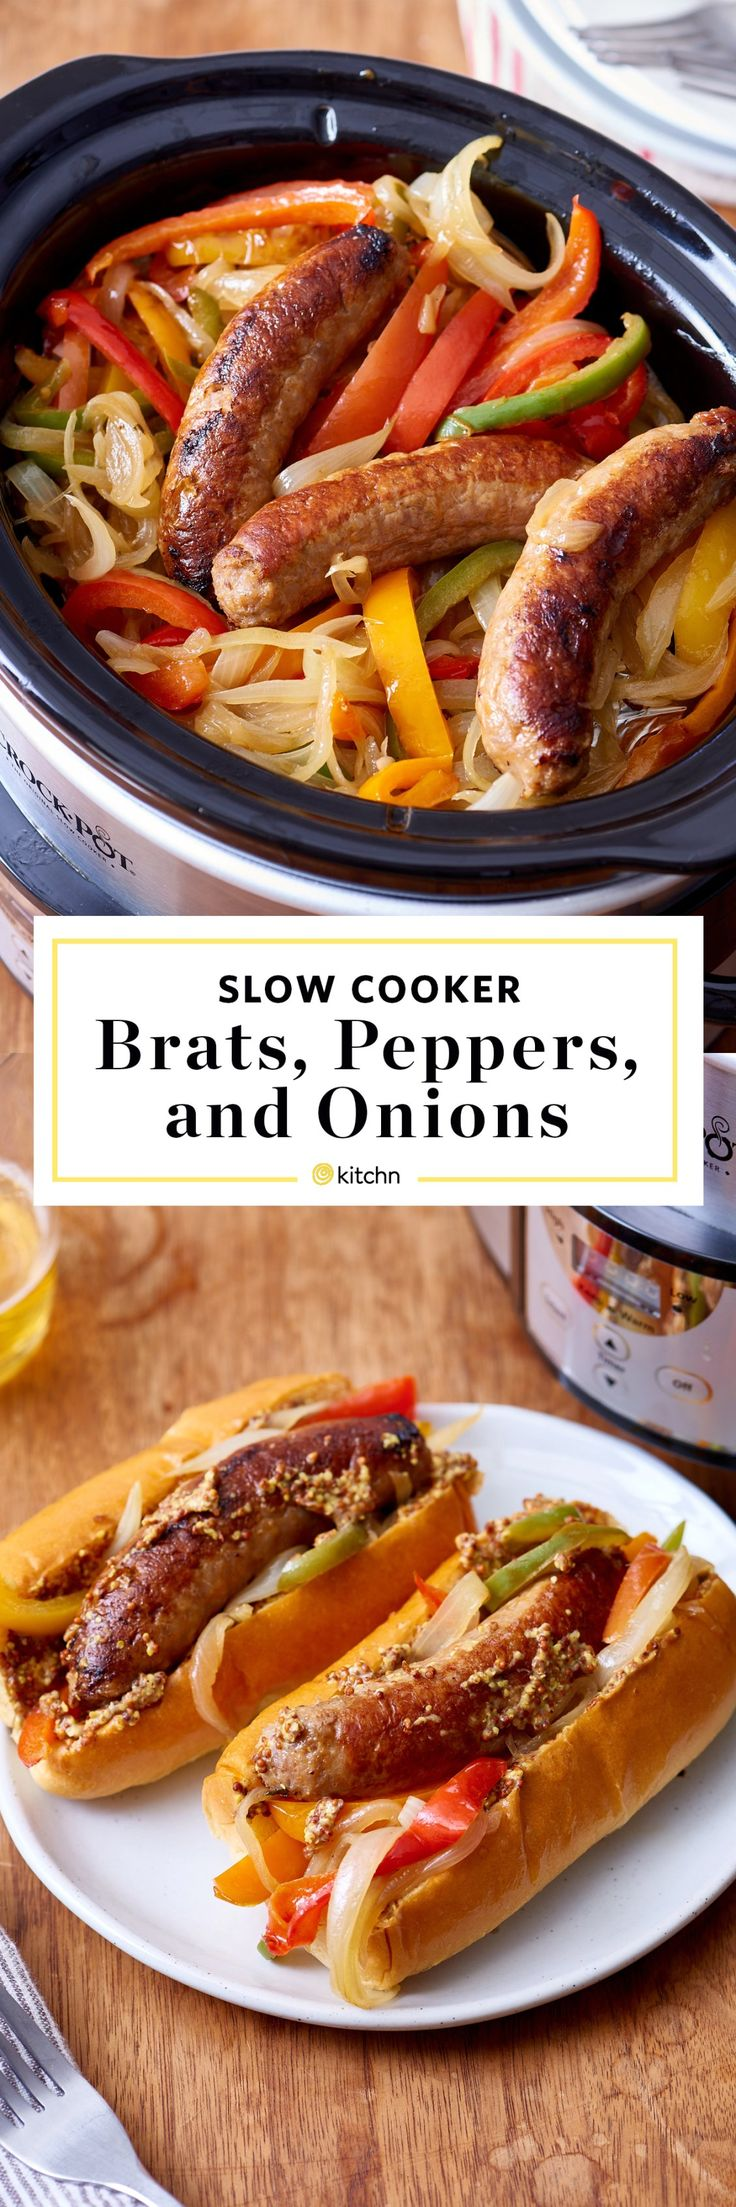 Slow cooked meals are a dream for cooks on a lazy weeknight. This slow-cooker sausage and peppers recipe with onions is a game-changer for lunch and dinner time. To make this quick and easy week night dinner, you'll need bell peppers, yellow onions, beer, whole grain mustard, freshly ground pepper uncooked Italian or bratwurst sausages and hot dog buns or sandwich rolls. You can also choose side it with mashed potatoes — you choose!